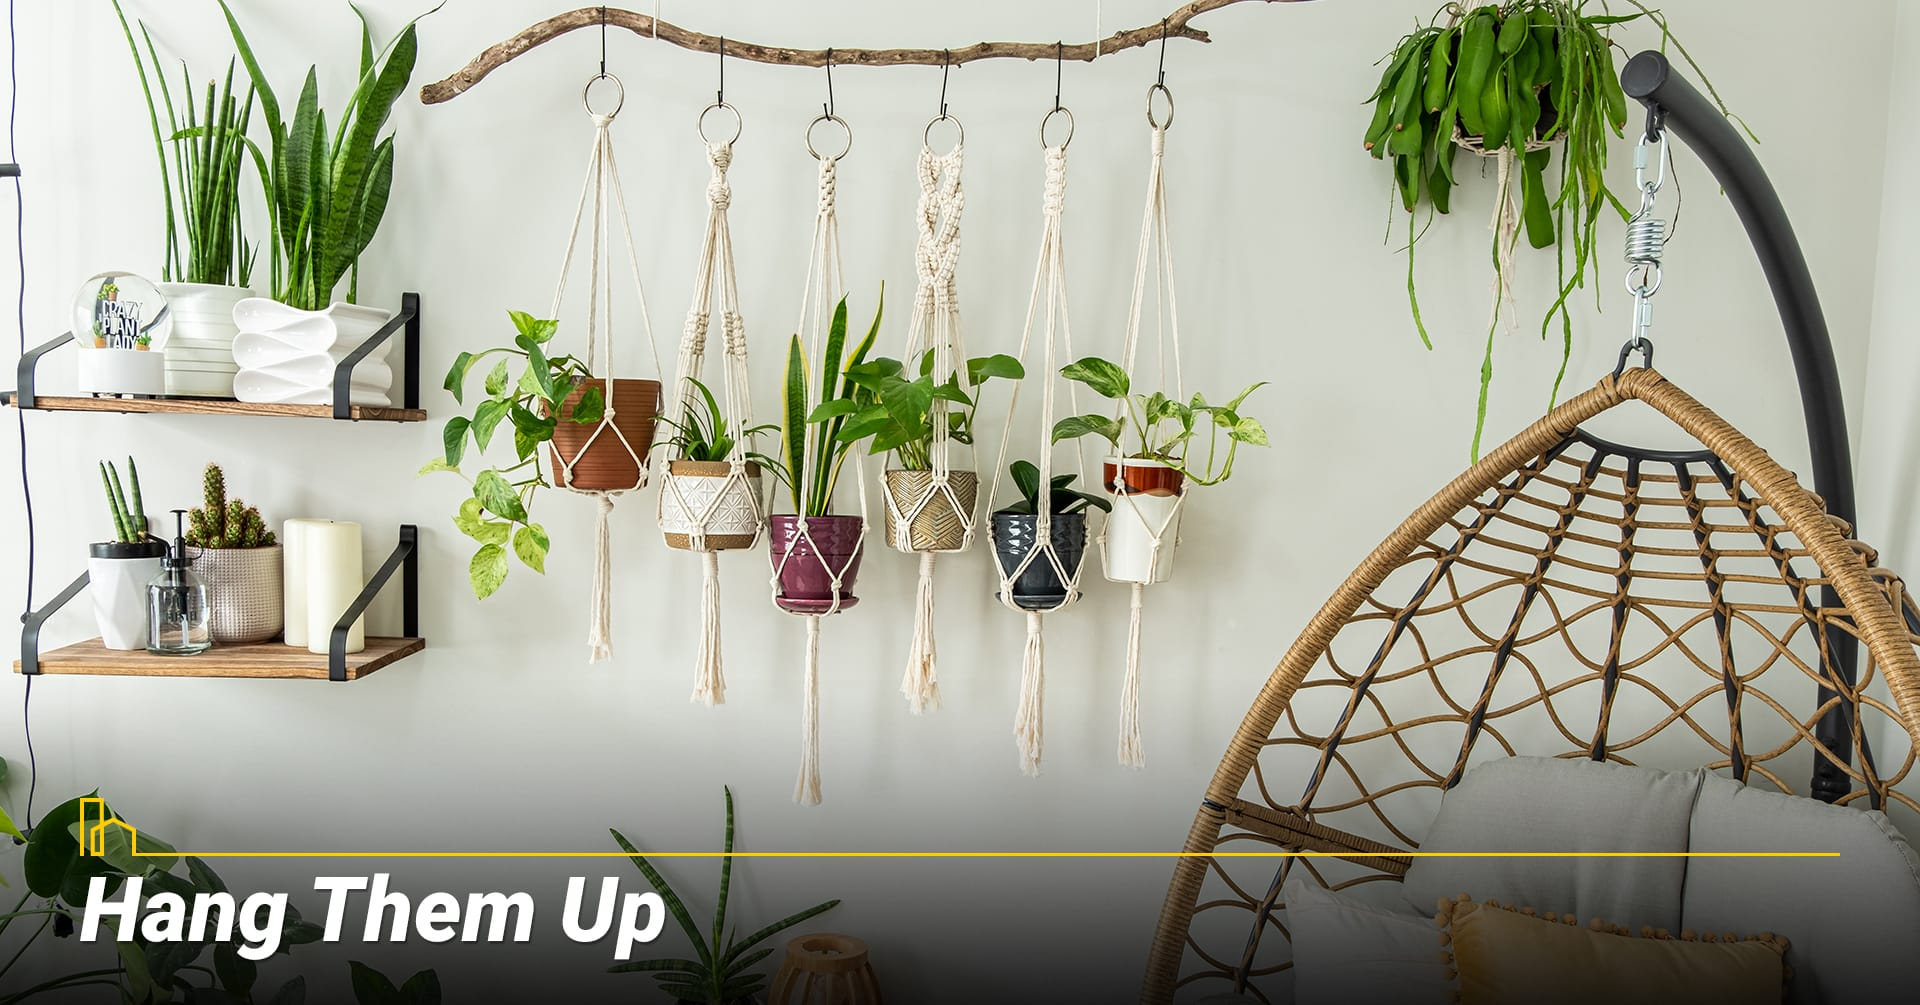 Hang Them Up, Make good use of indoor plants